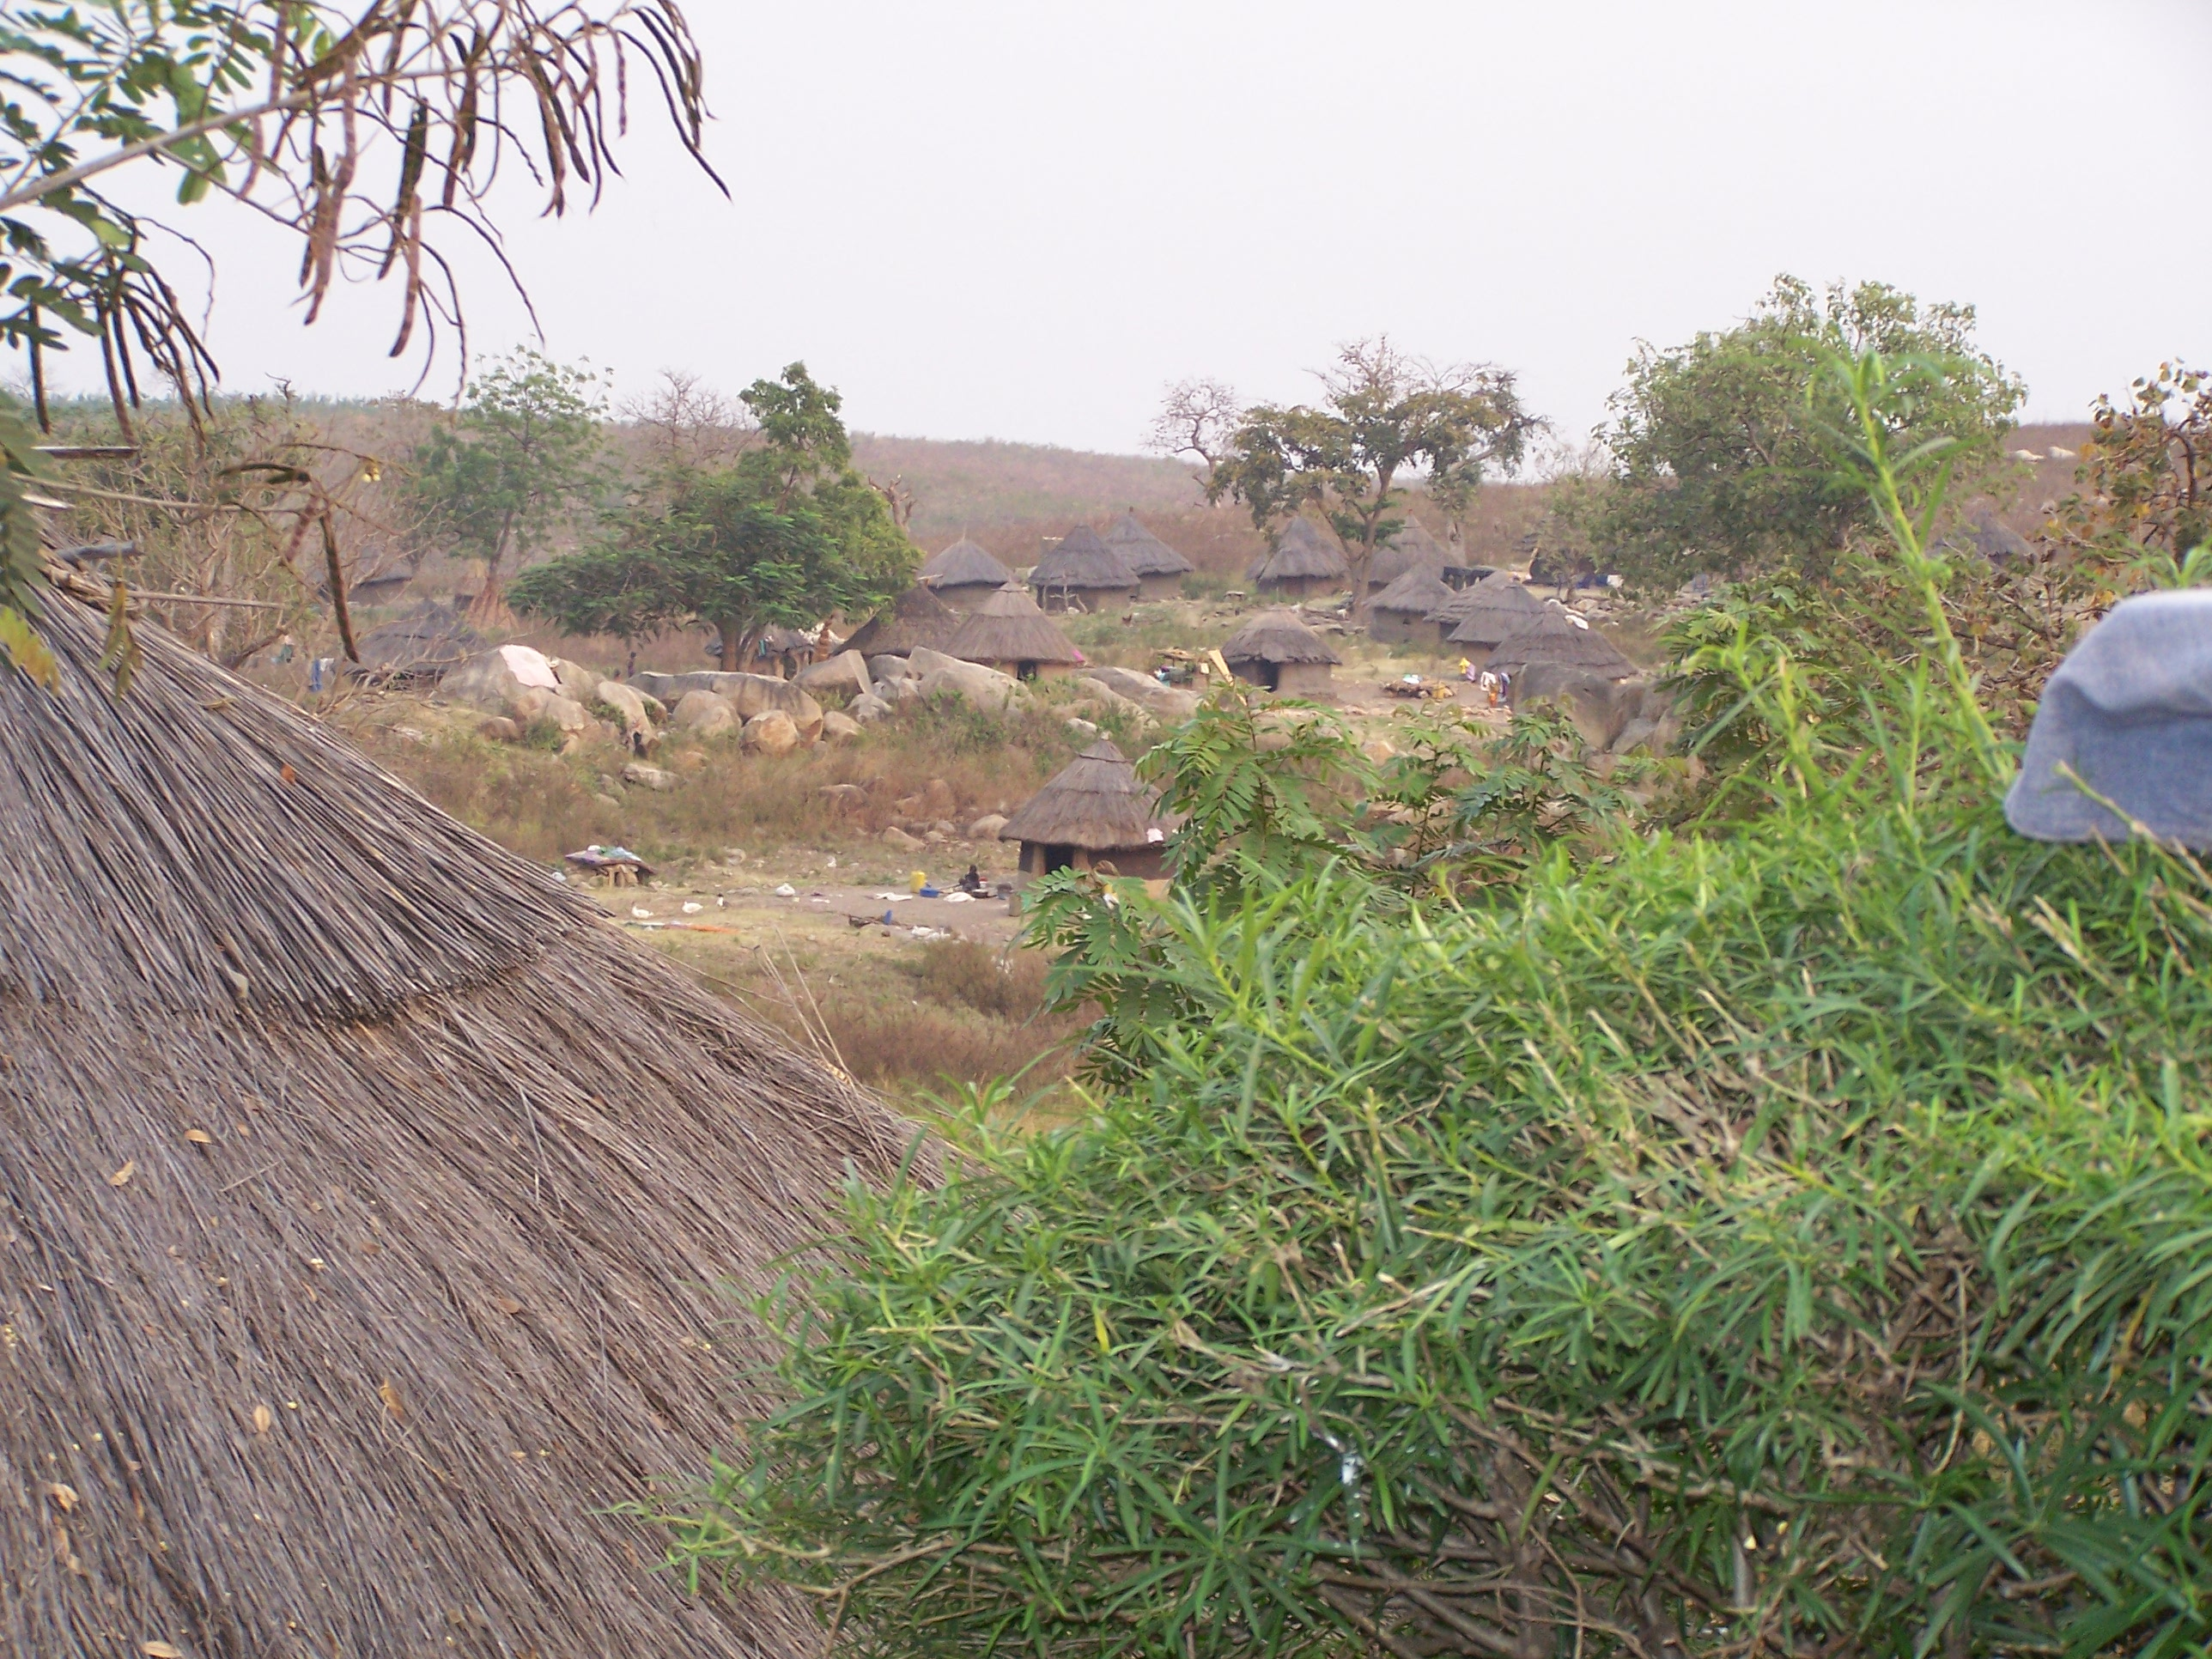 Refugee Camp Alere 2 in northern Uganda, home to clients at the time of representation